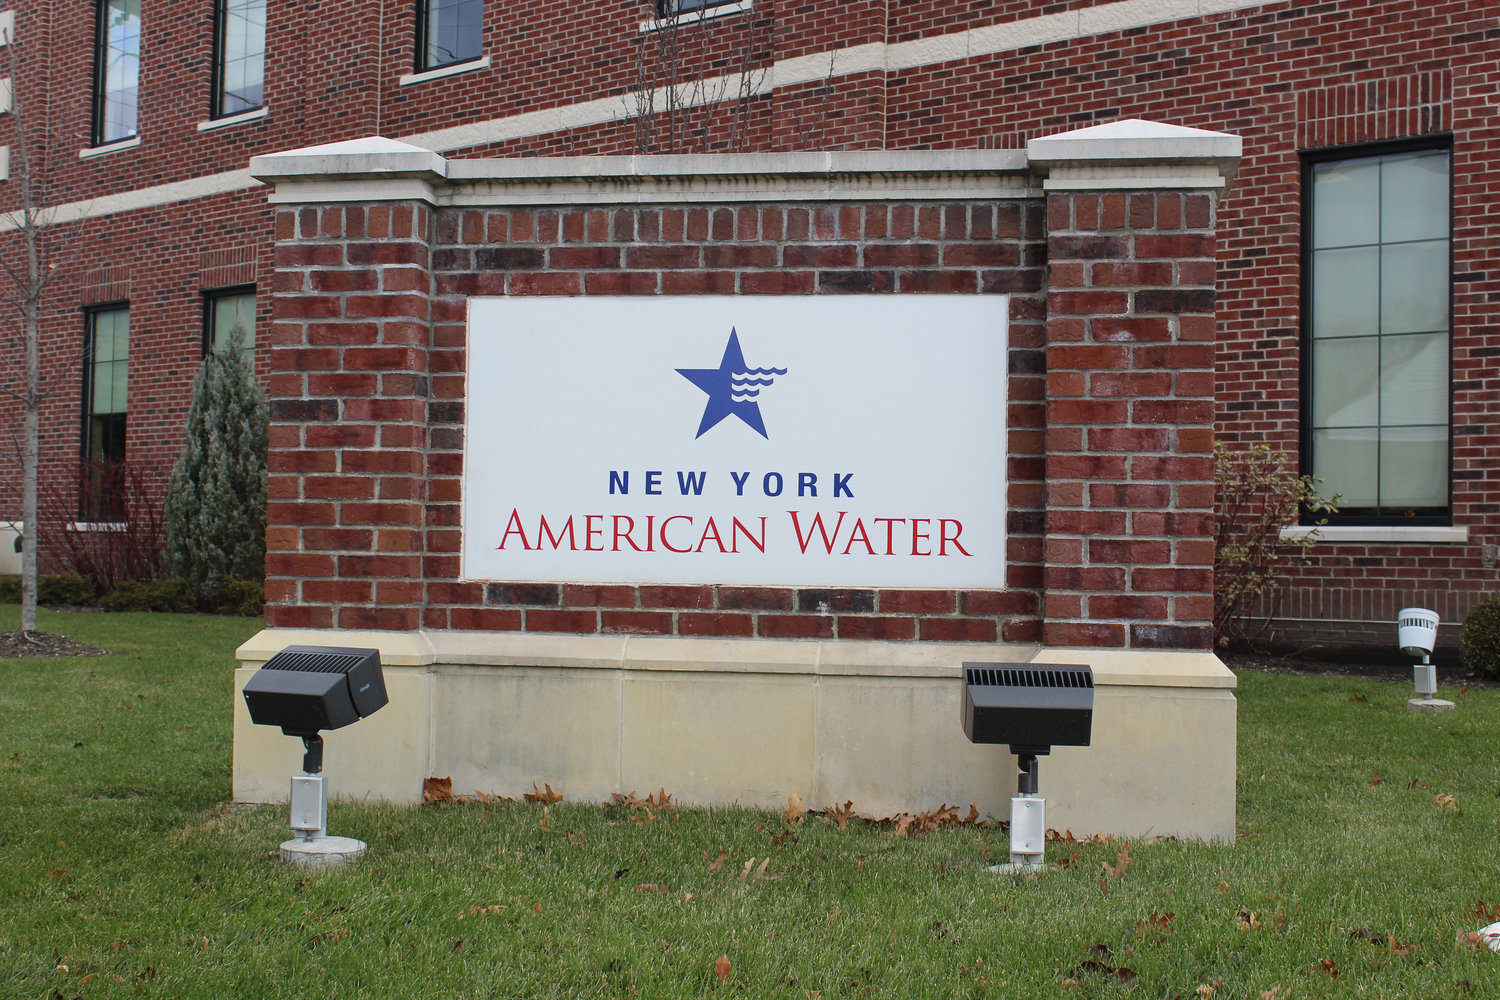 Though residents in the Lynbrook service area faced a possible 21 percent increase in their water rates, the Public Service Commission announced that the rates will only increase by 6 percent on April 1.